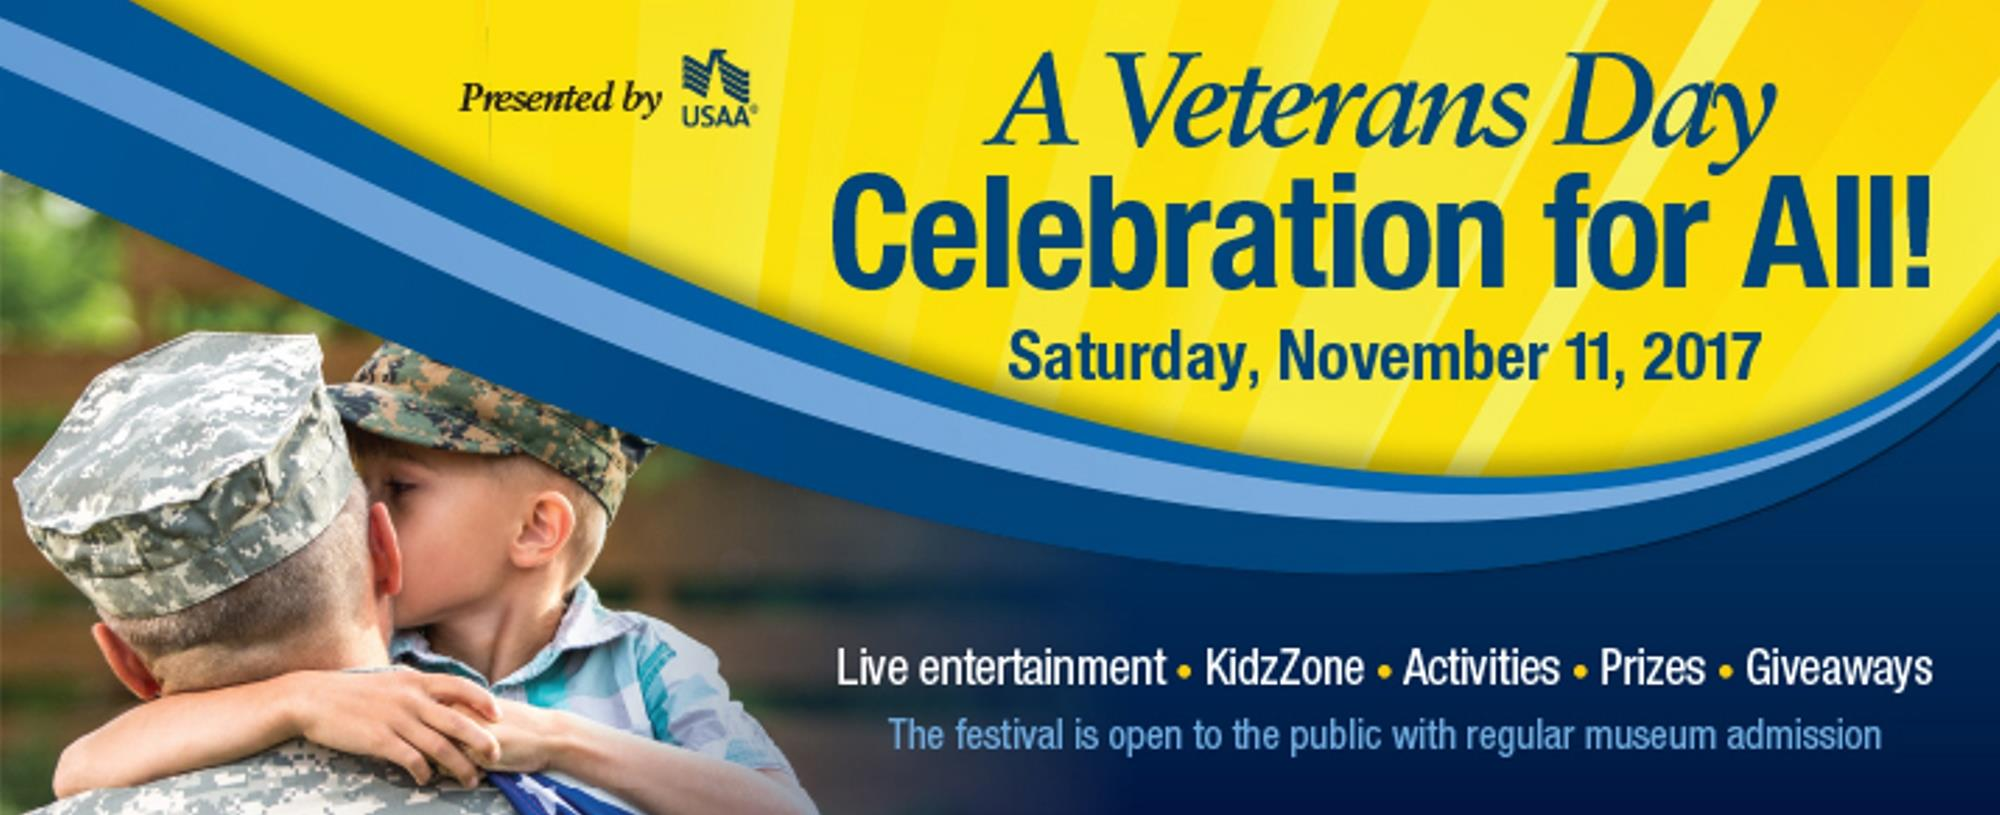 A Veteran's Day Celebration for All!